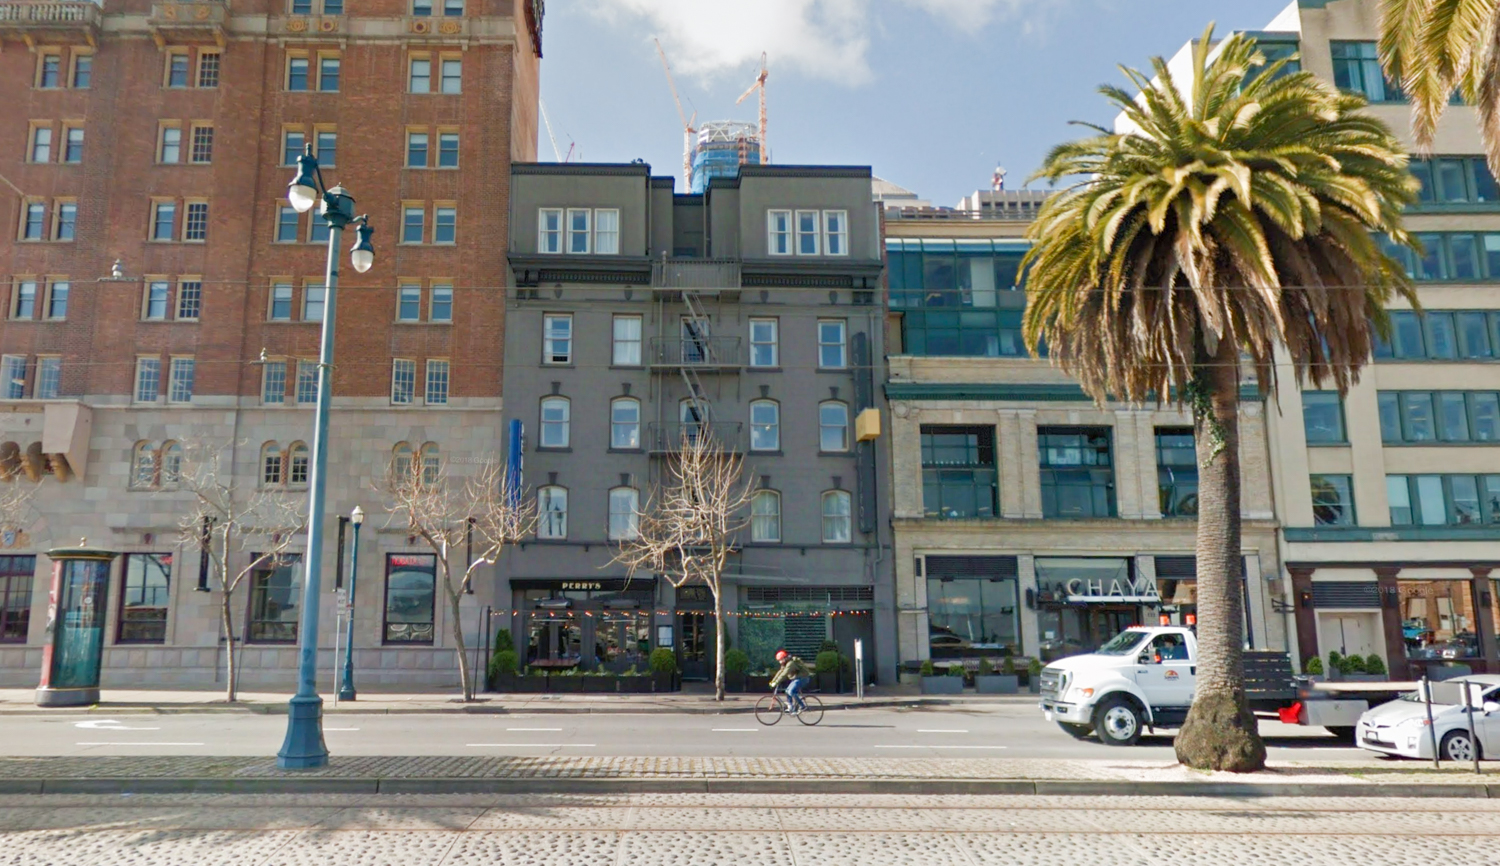 155 Steuart Street with the Salesforce Building near its peak, pictures in 2017 via Google Street View